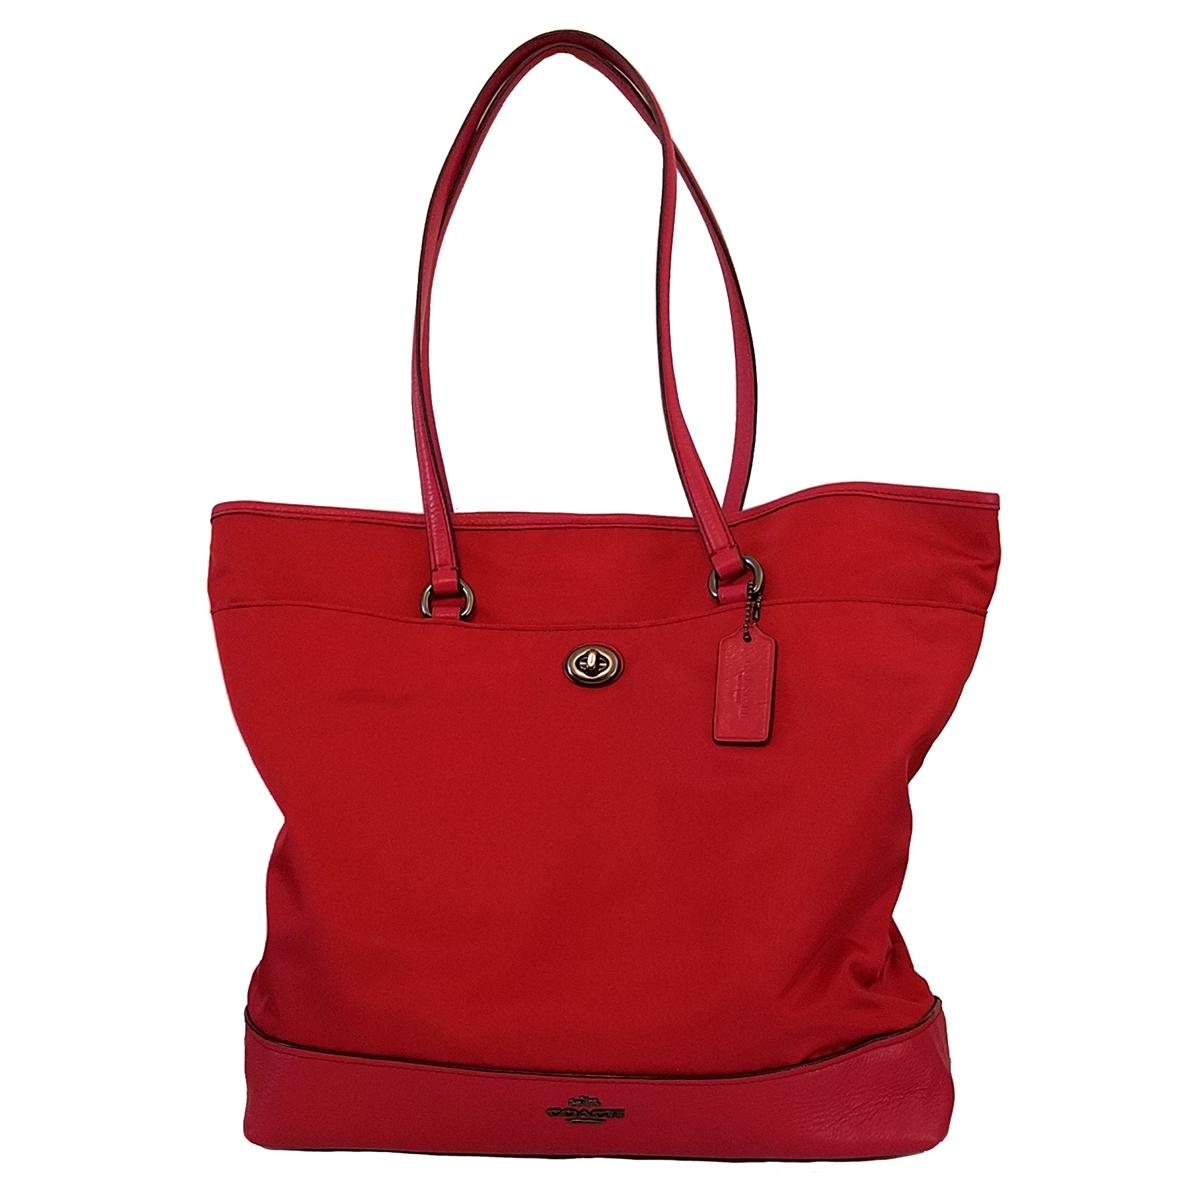 83156a0774 123456789101112 481c2 b316b; get coach tote in red 27f82 62574